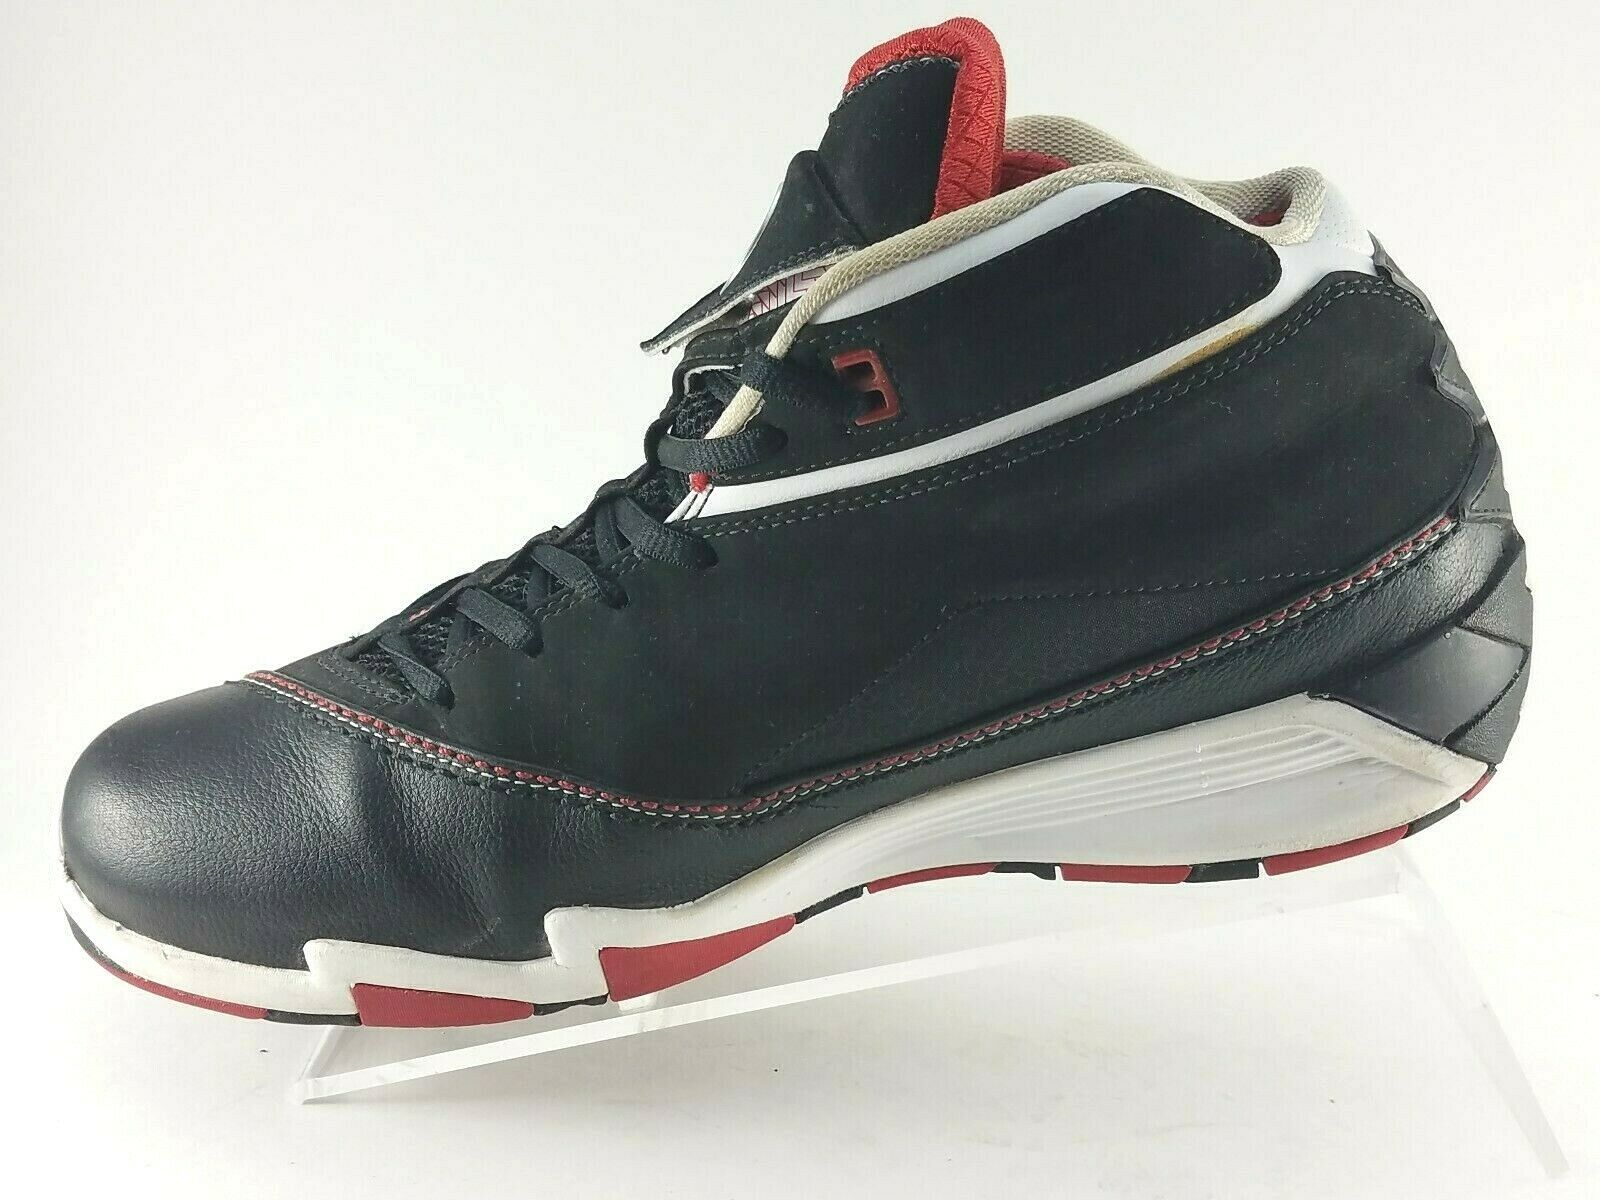 CONVERSE WADE 3 Mens MID SNEAKERS, SIZE 10 LEATHER